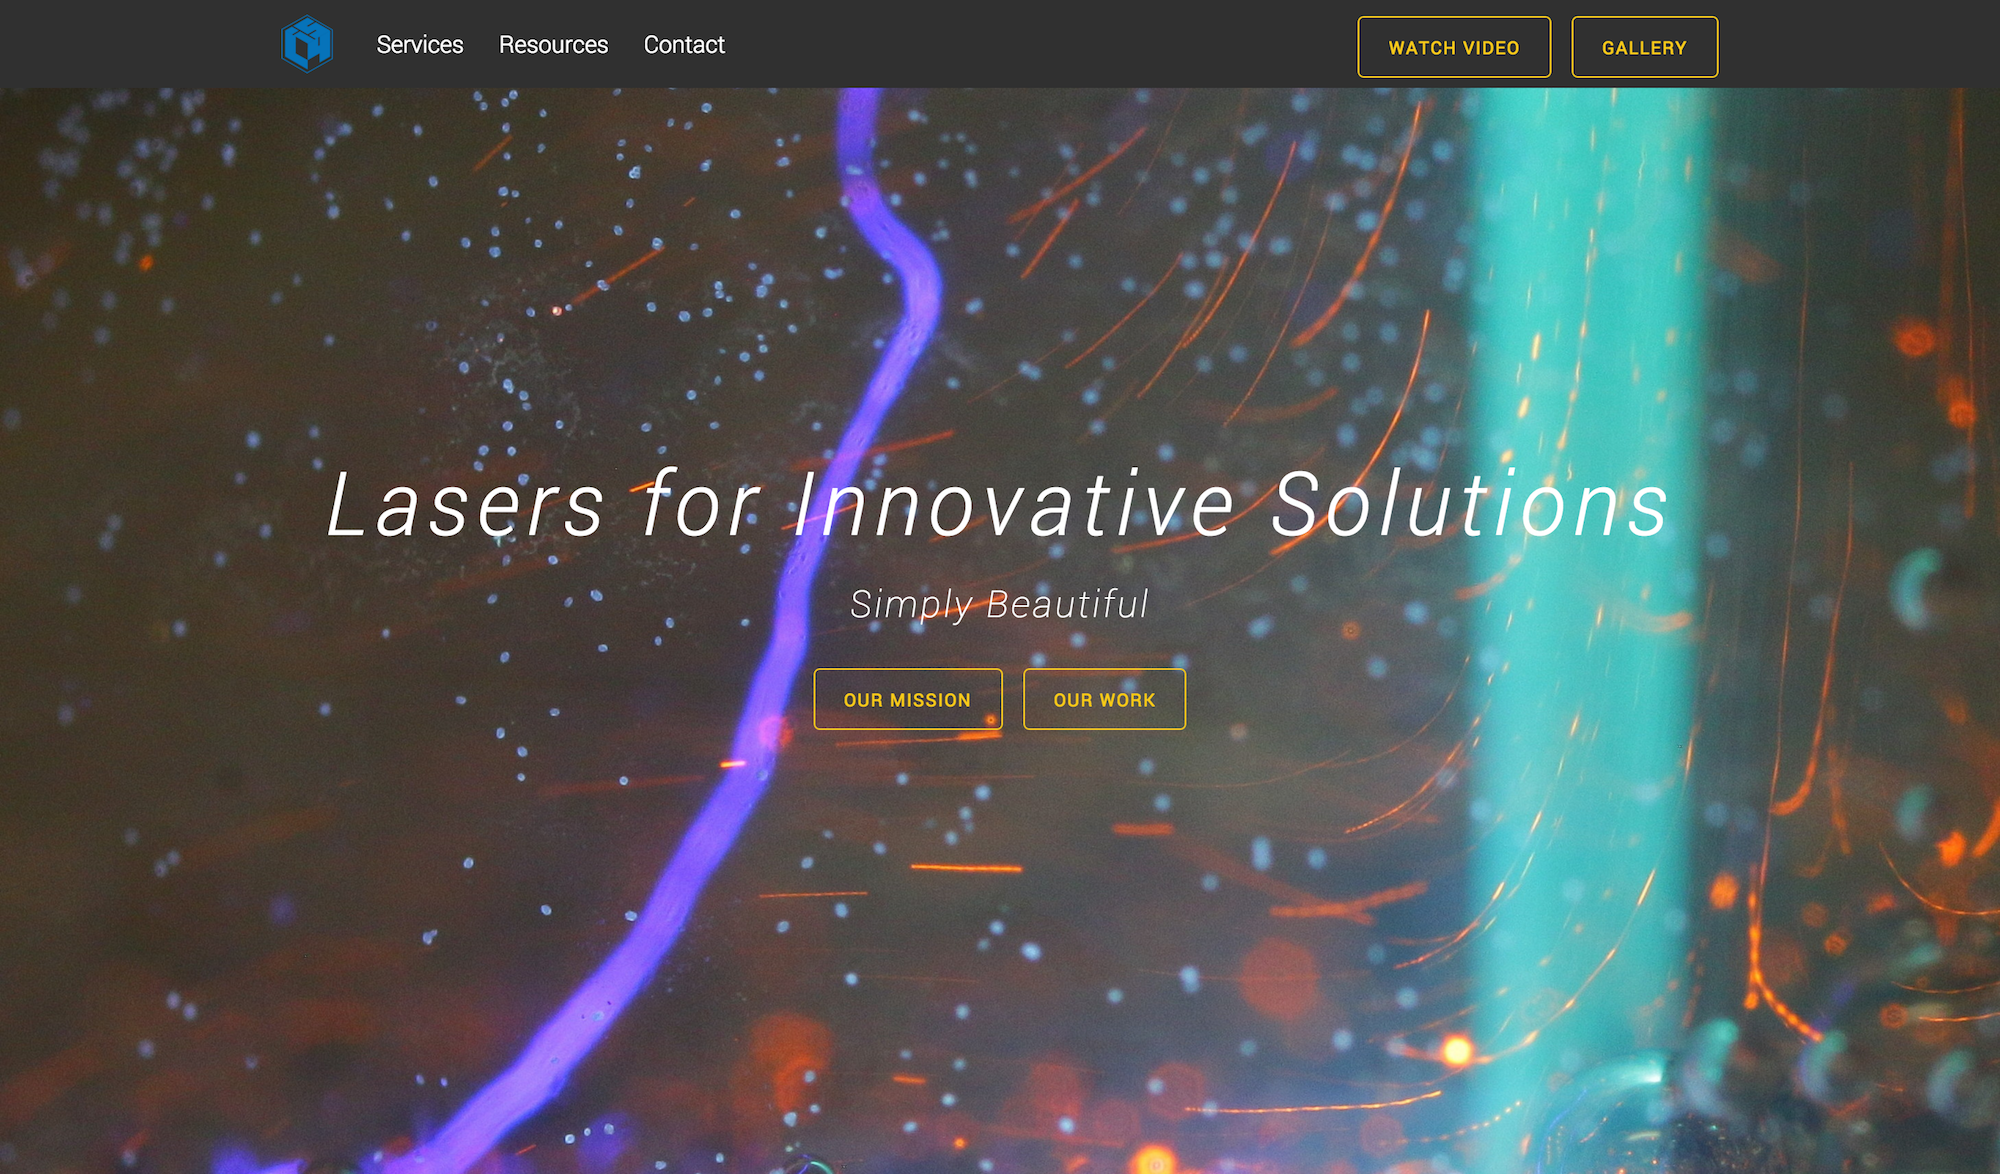 L4iS   Lasers for Innovative Solutions